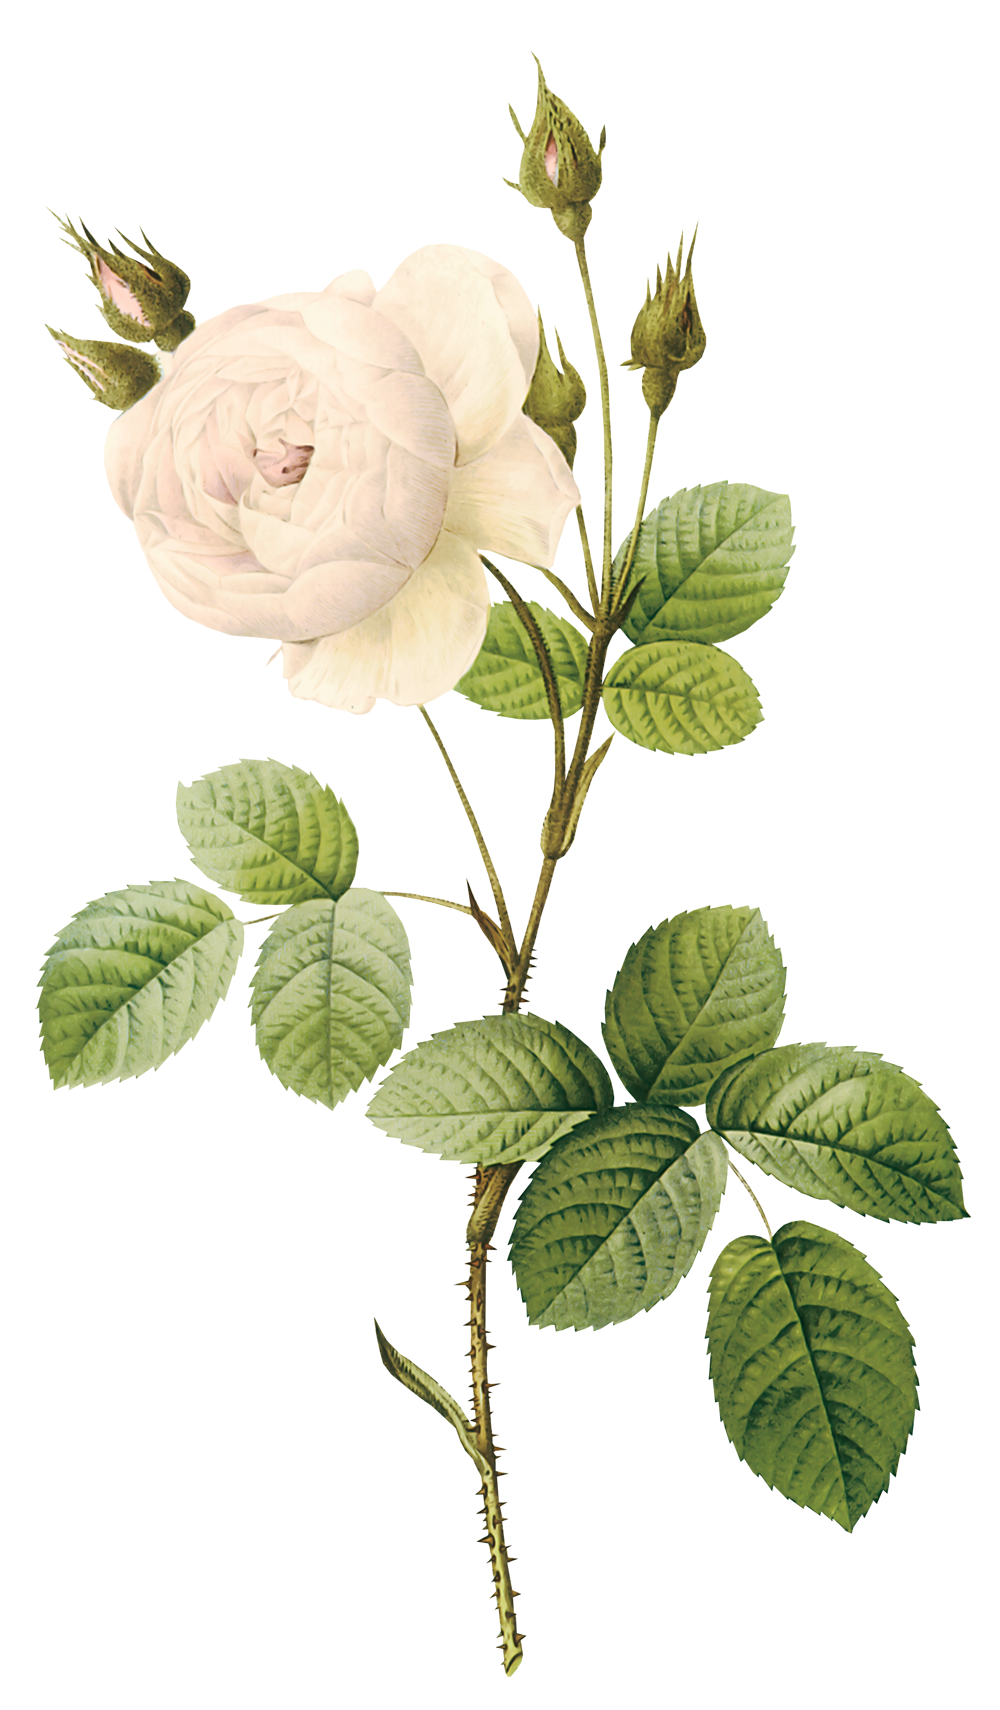 Flower & stem png. White rose image picture